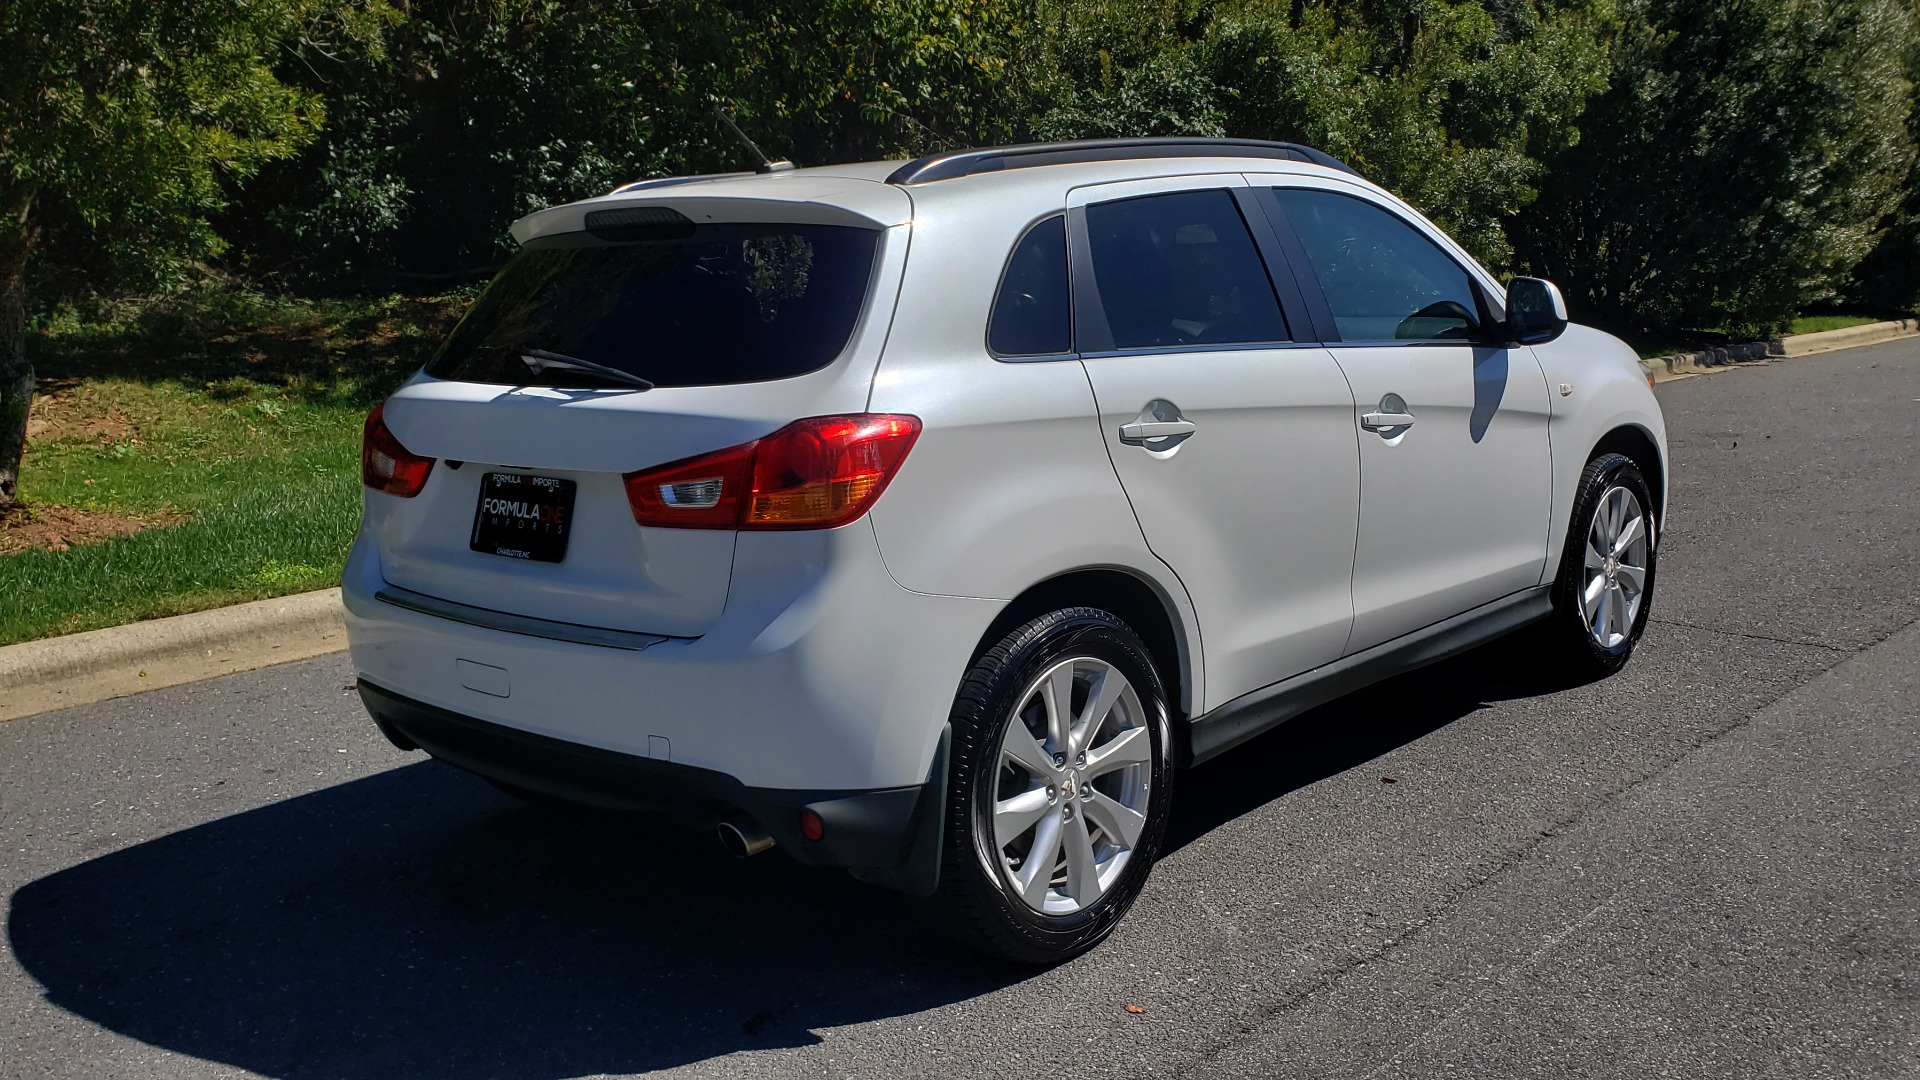 Used 2013 Mitsubishi OUTLANDER SPORT SE / 2WD / 4-DR SUV / CVT TRANS / PREMIUM SOUND / REARVIEW for sale $8,695 at Formula Imports in Charlotte NC 28227 6